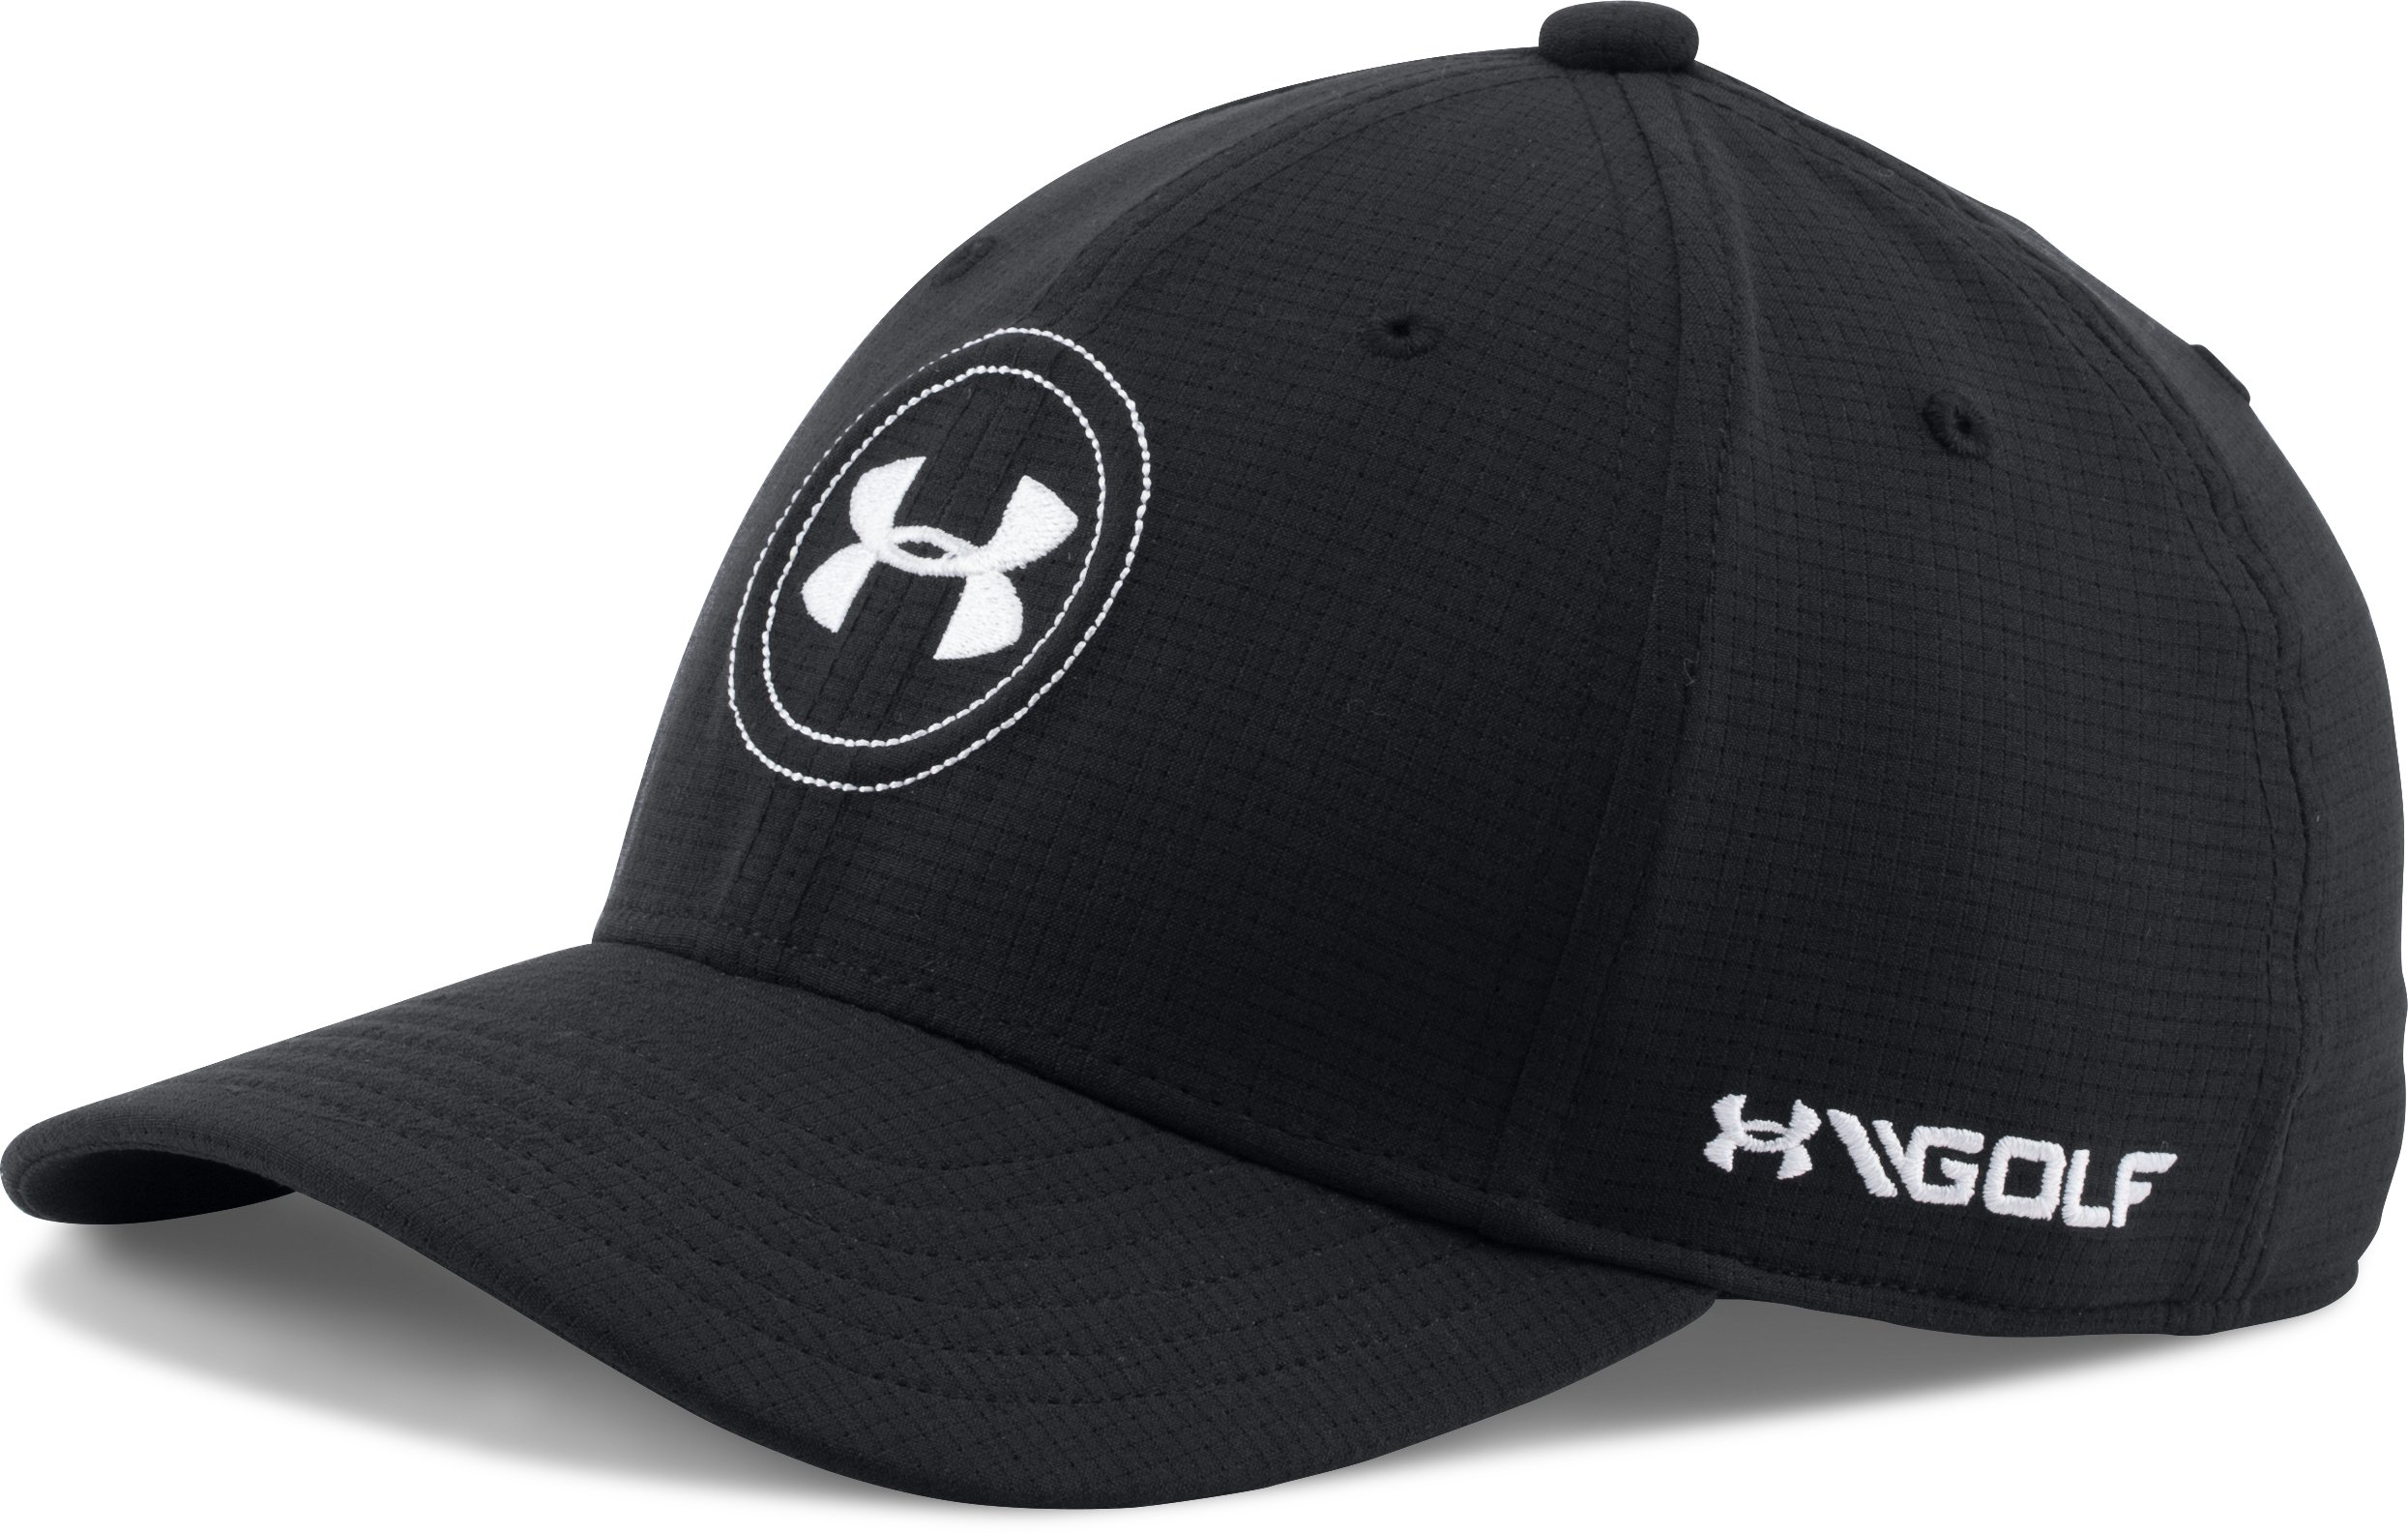 stretch skull caps Boys' Jordan Spieth UA Tour Cap <strong>Stretch</strong> construction provides a comfortable fit